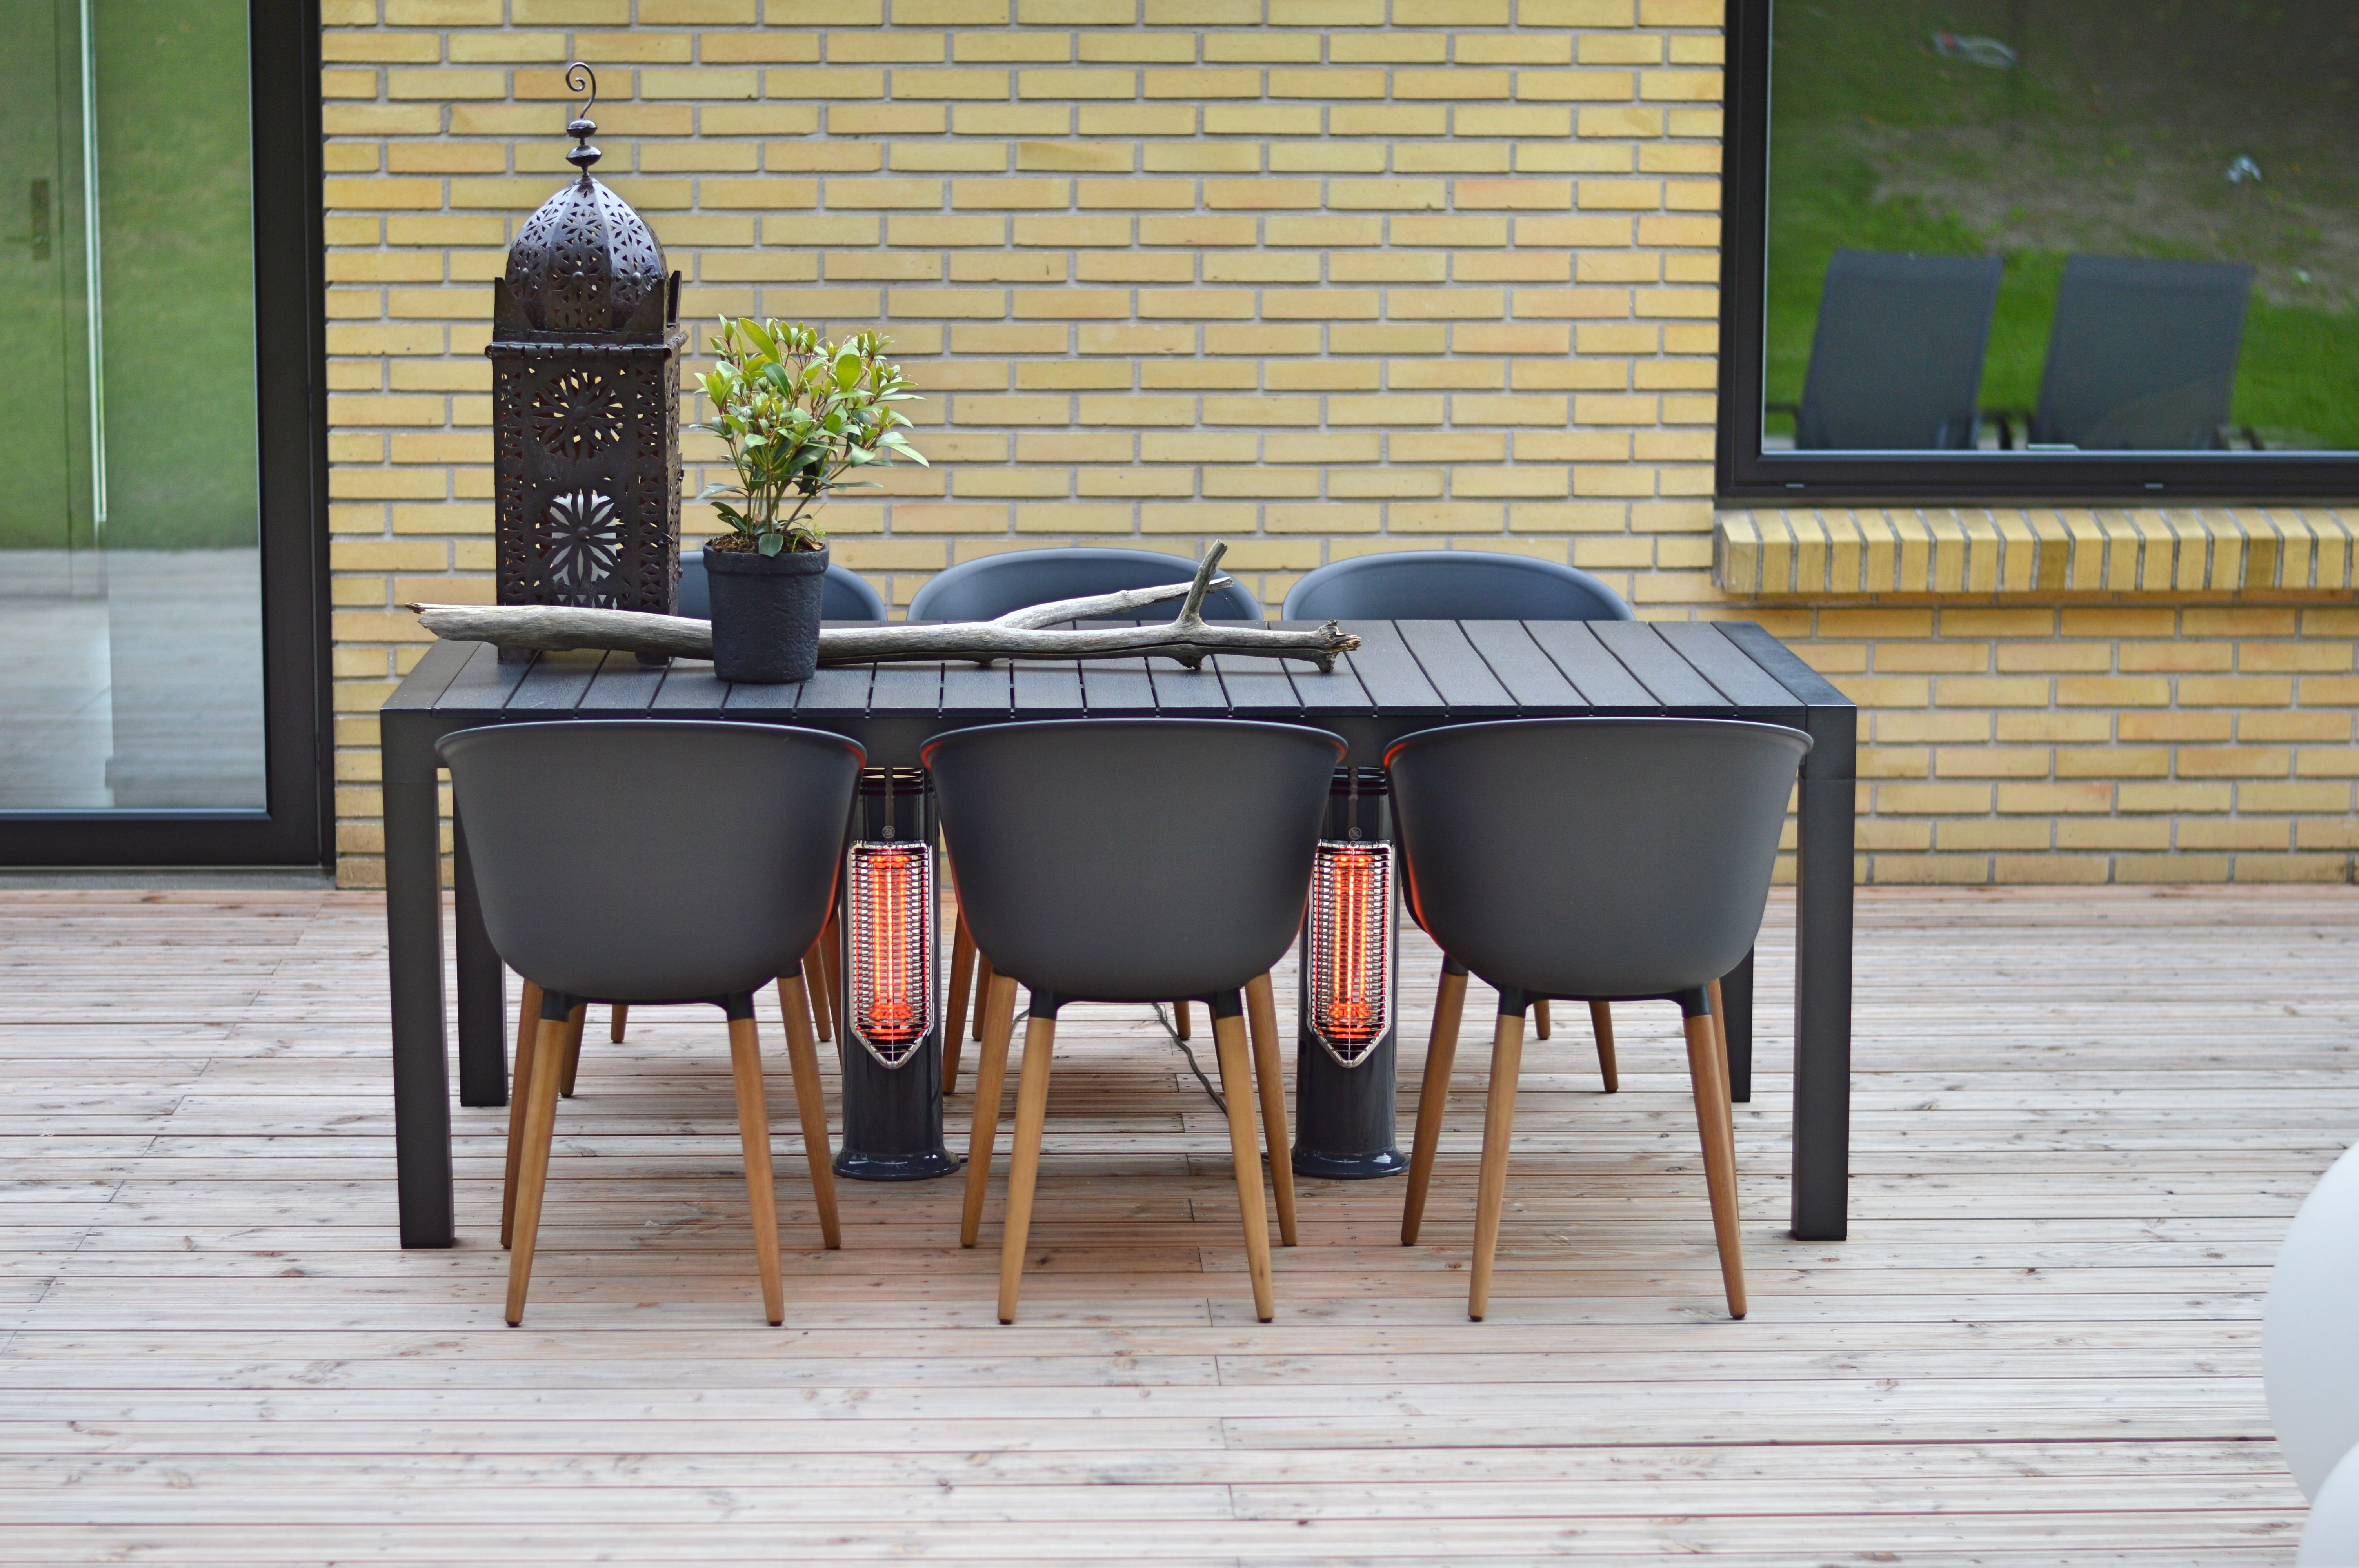 Outdoor Table Heating Safe To Touch Patio Heater Danish Design Imus Patio Heater Outdoor Heating Environmen Outdoor Heating Outdoor Heaters Patio Heater